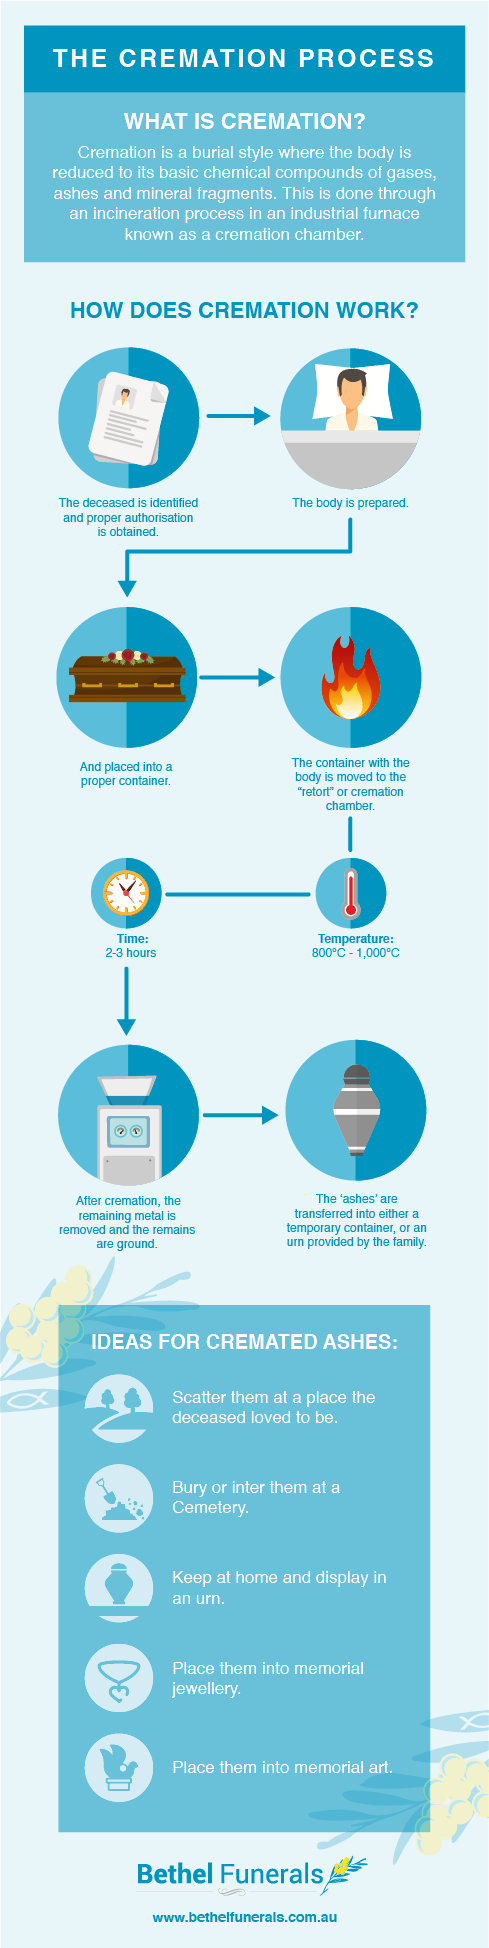 cremation process infographic